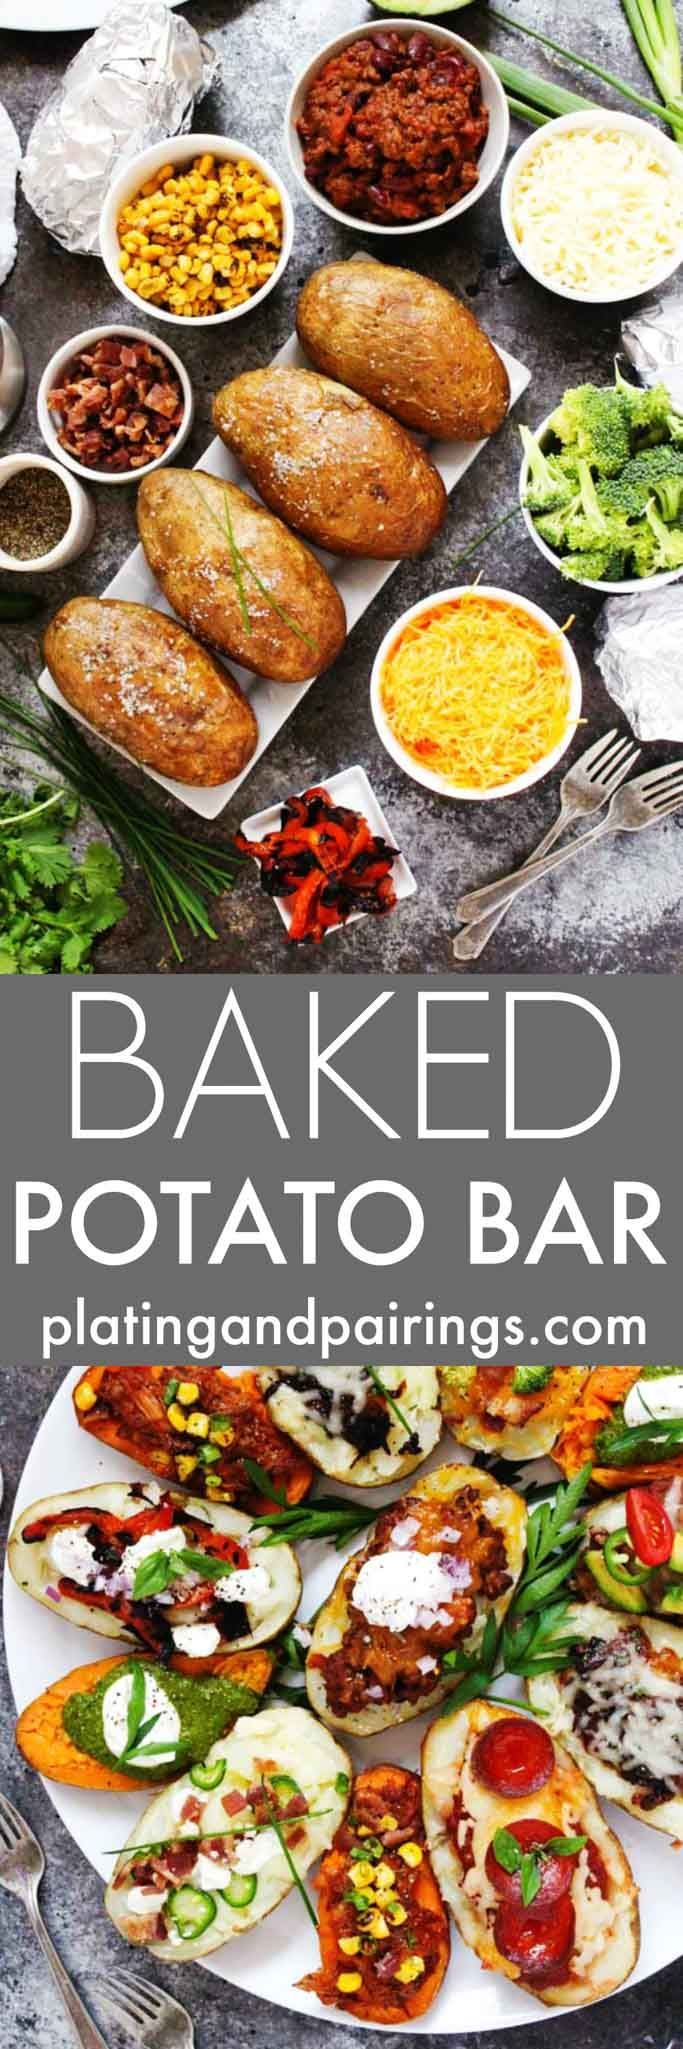 """Create a Grilled """"Baked"""" Potato Bar for your next party, potluck or tailgating…"""